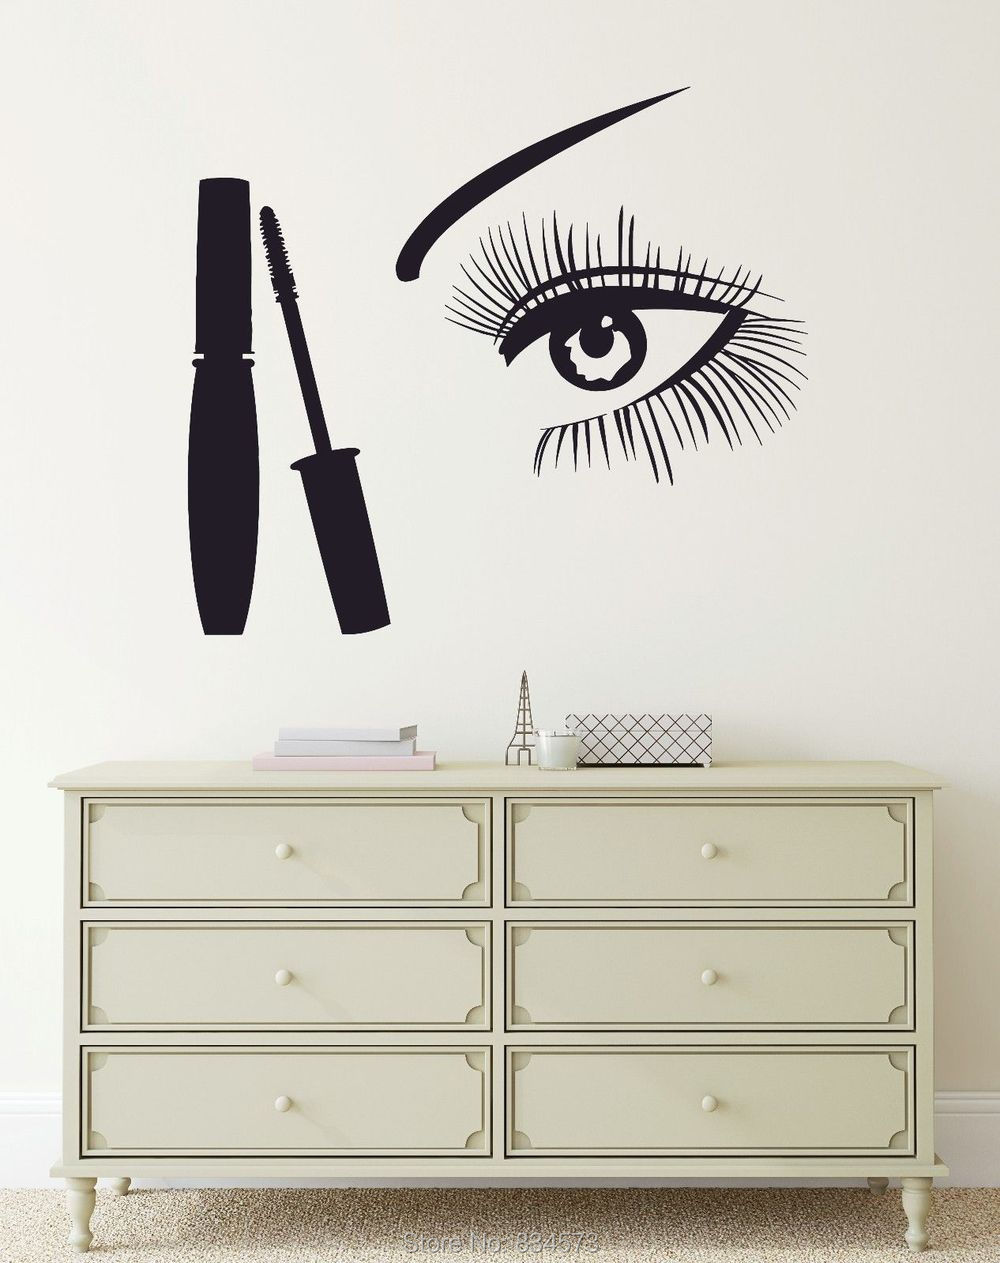 Makeup woman girls eye beauty salon wall art sticker decal home makeup woman girls eye beauty salon wall art sticker decal home diy decoration decor wall mural removable room decal stickers 57x57cm amipublicfo Images